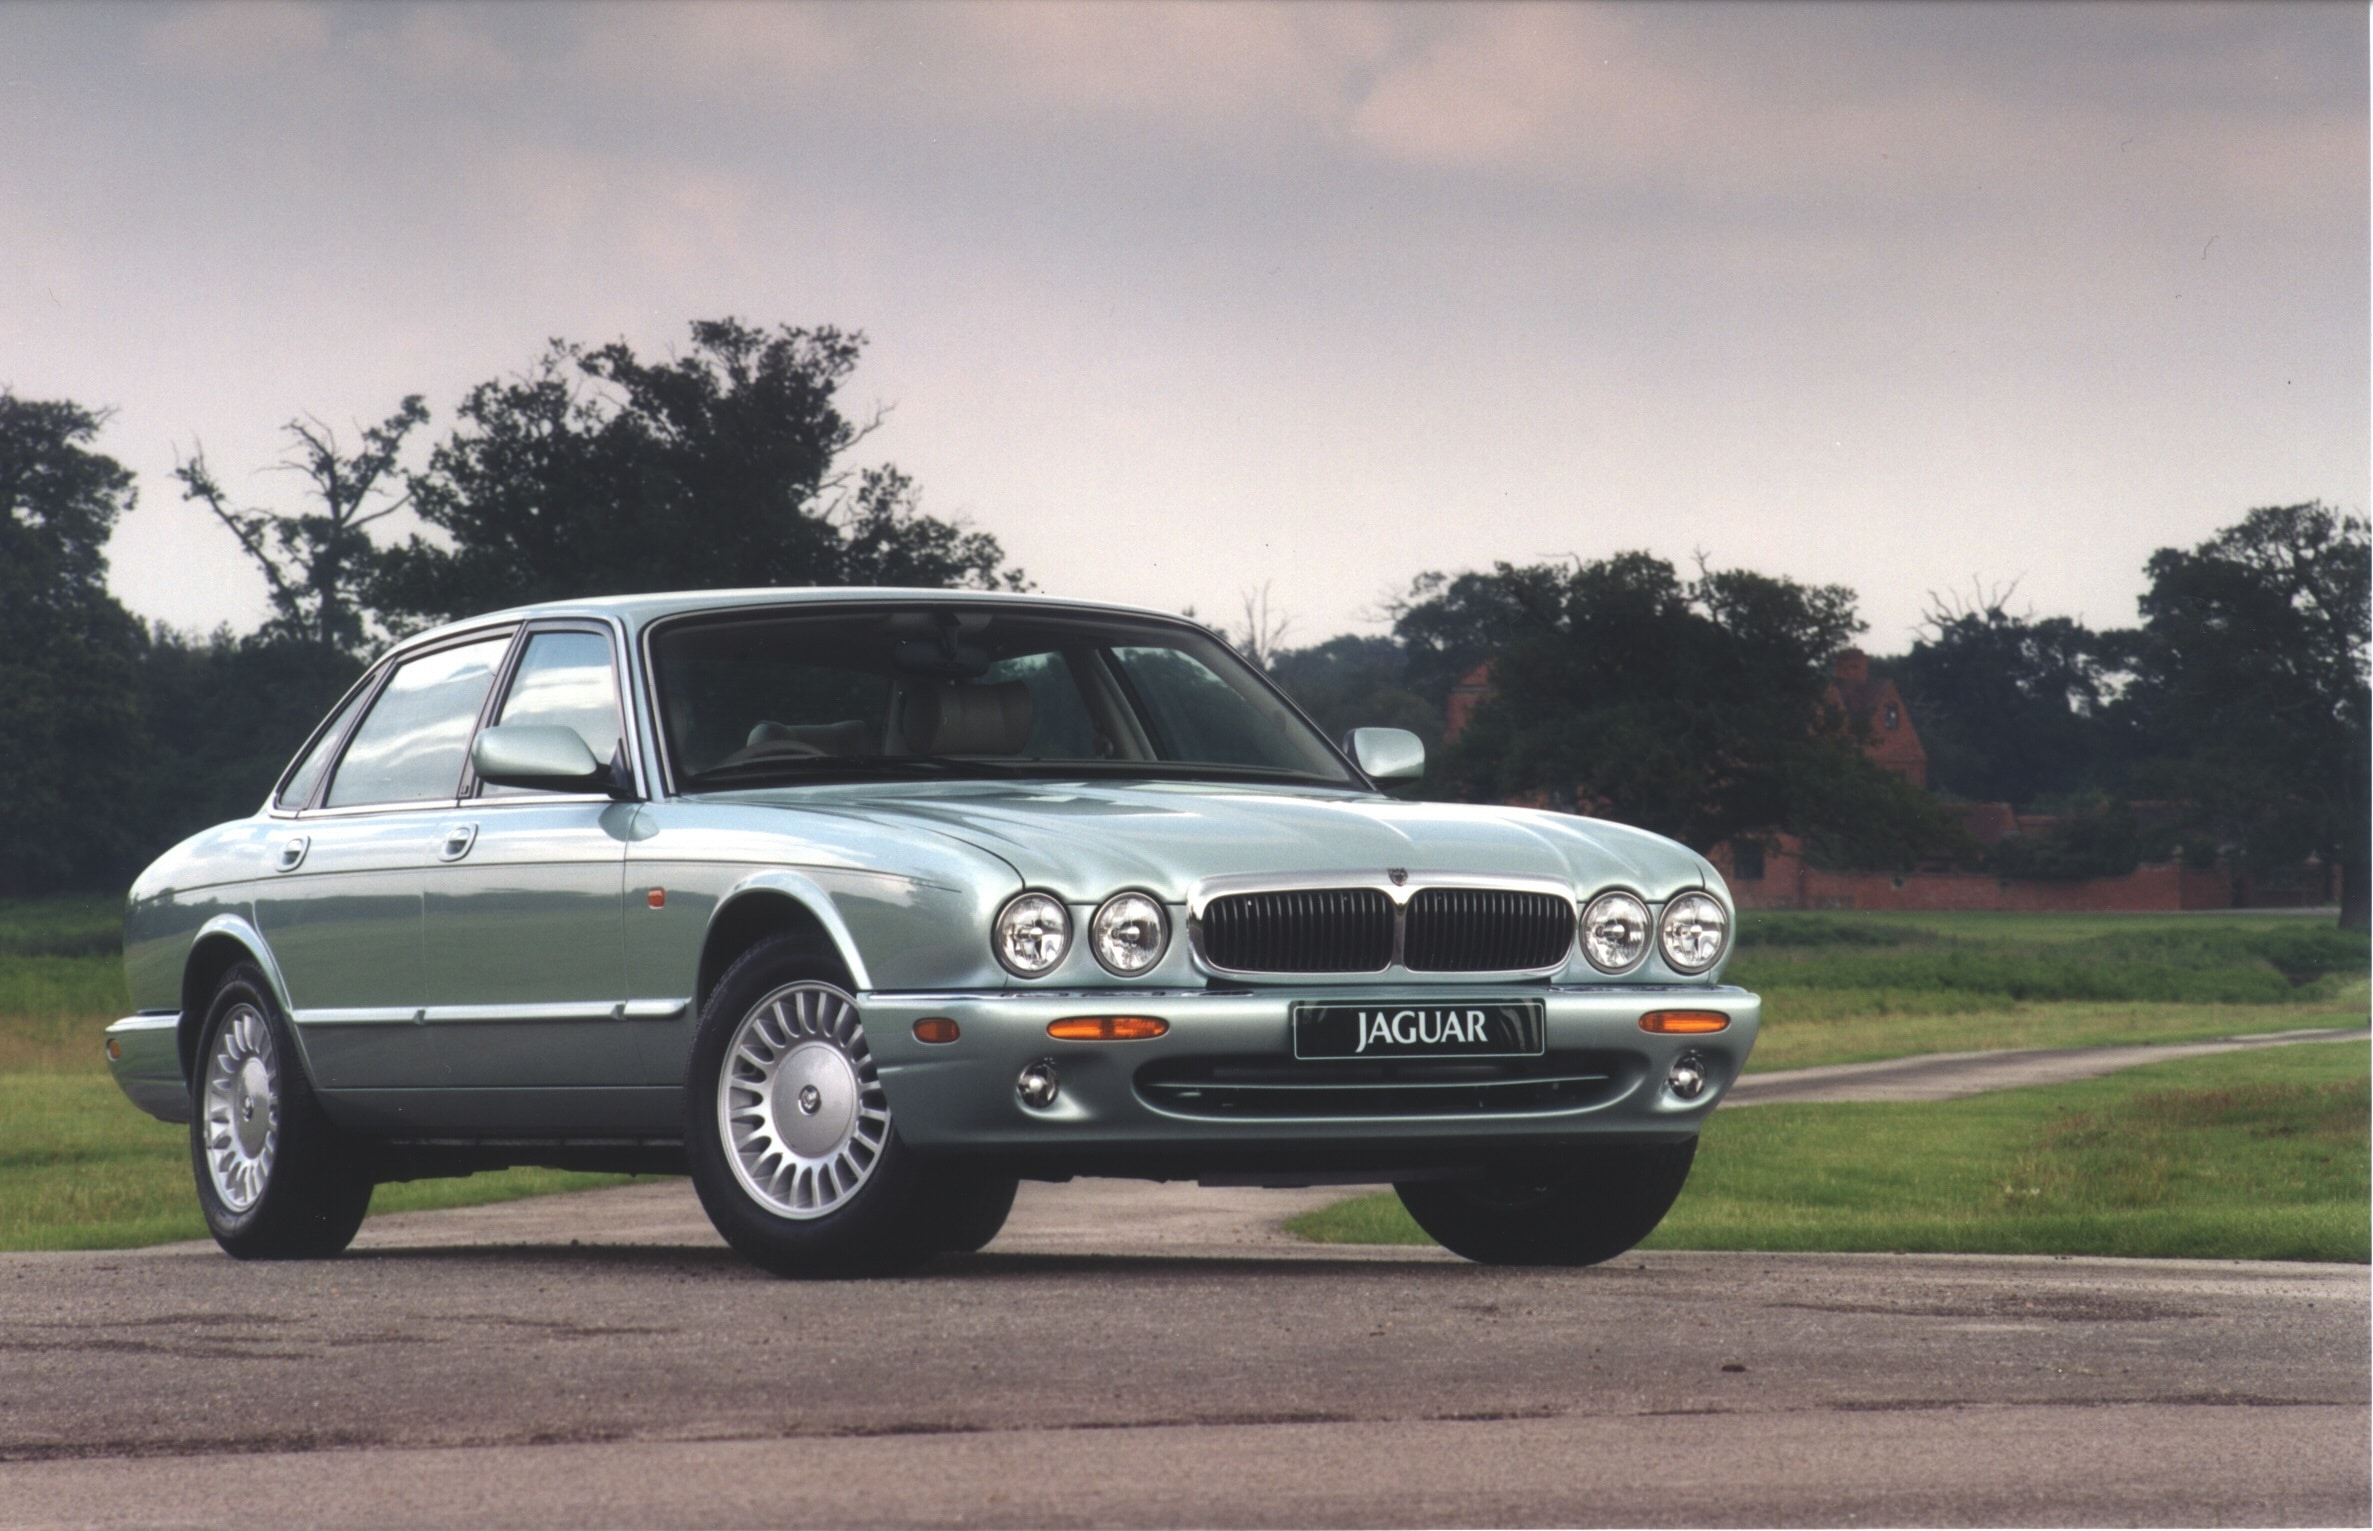 Jaguar XJ, Jaguar, XJ, XJ6, XJ8, XJR, V8 straight-six, british car, gaydon, classic car, retro car, daimler, motoring, automotive, car, cars, british classic, gangster, snatch, ebay motors, autotrader